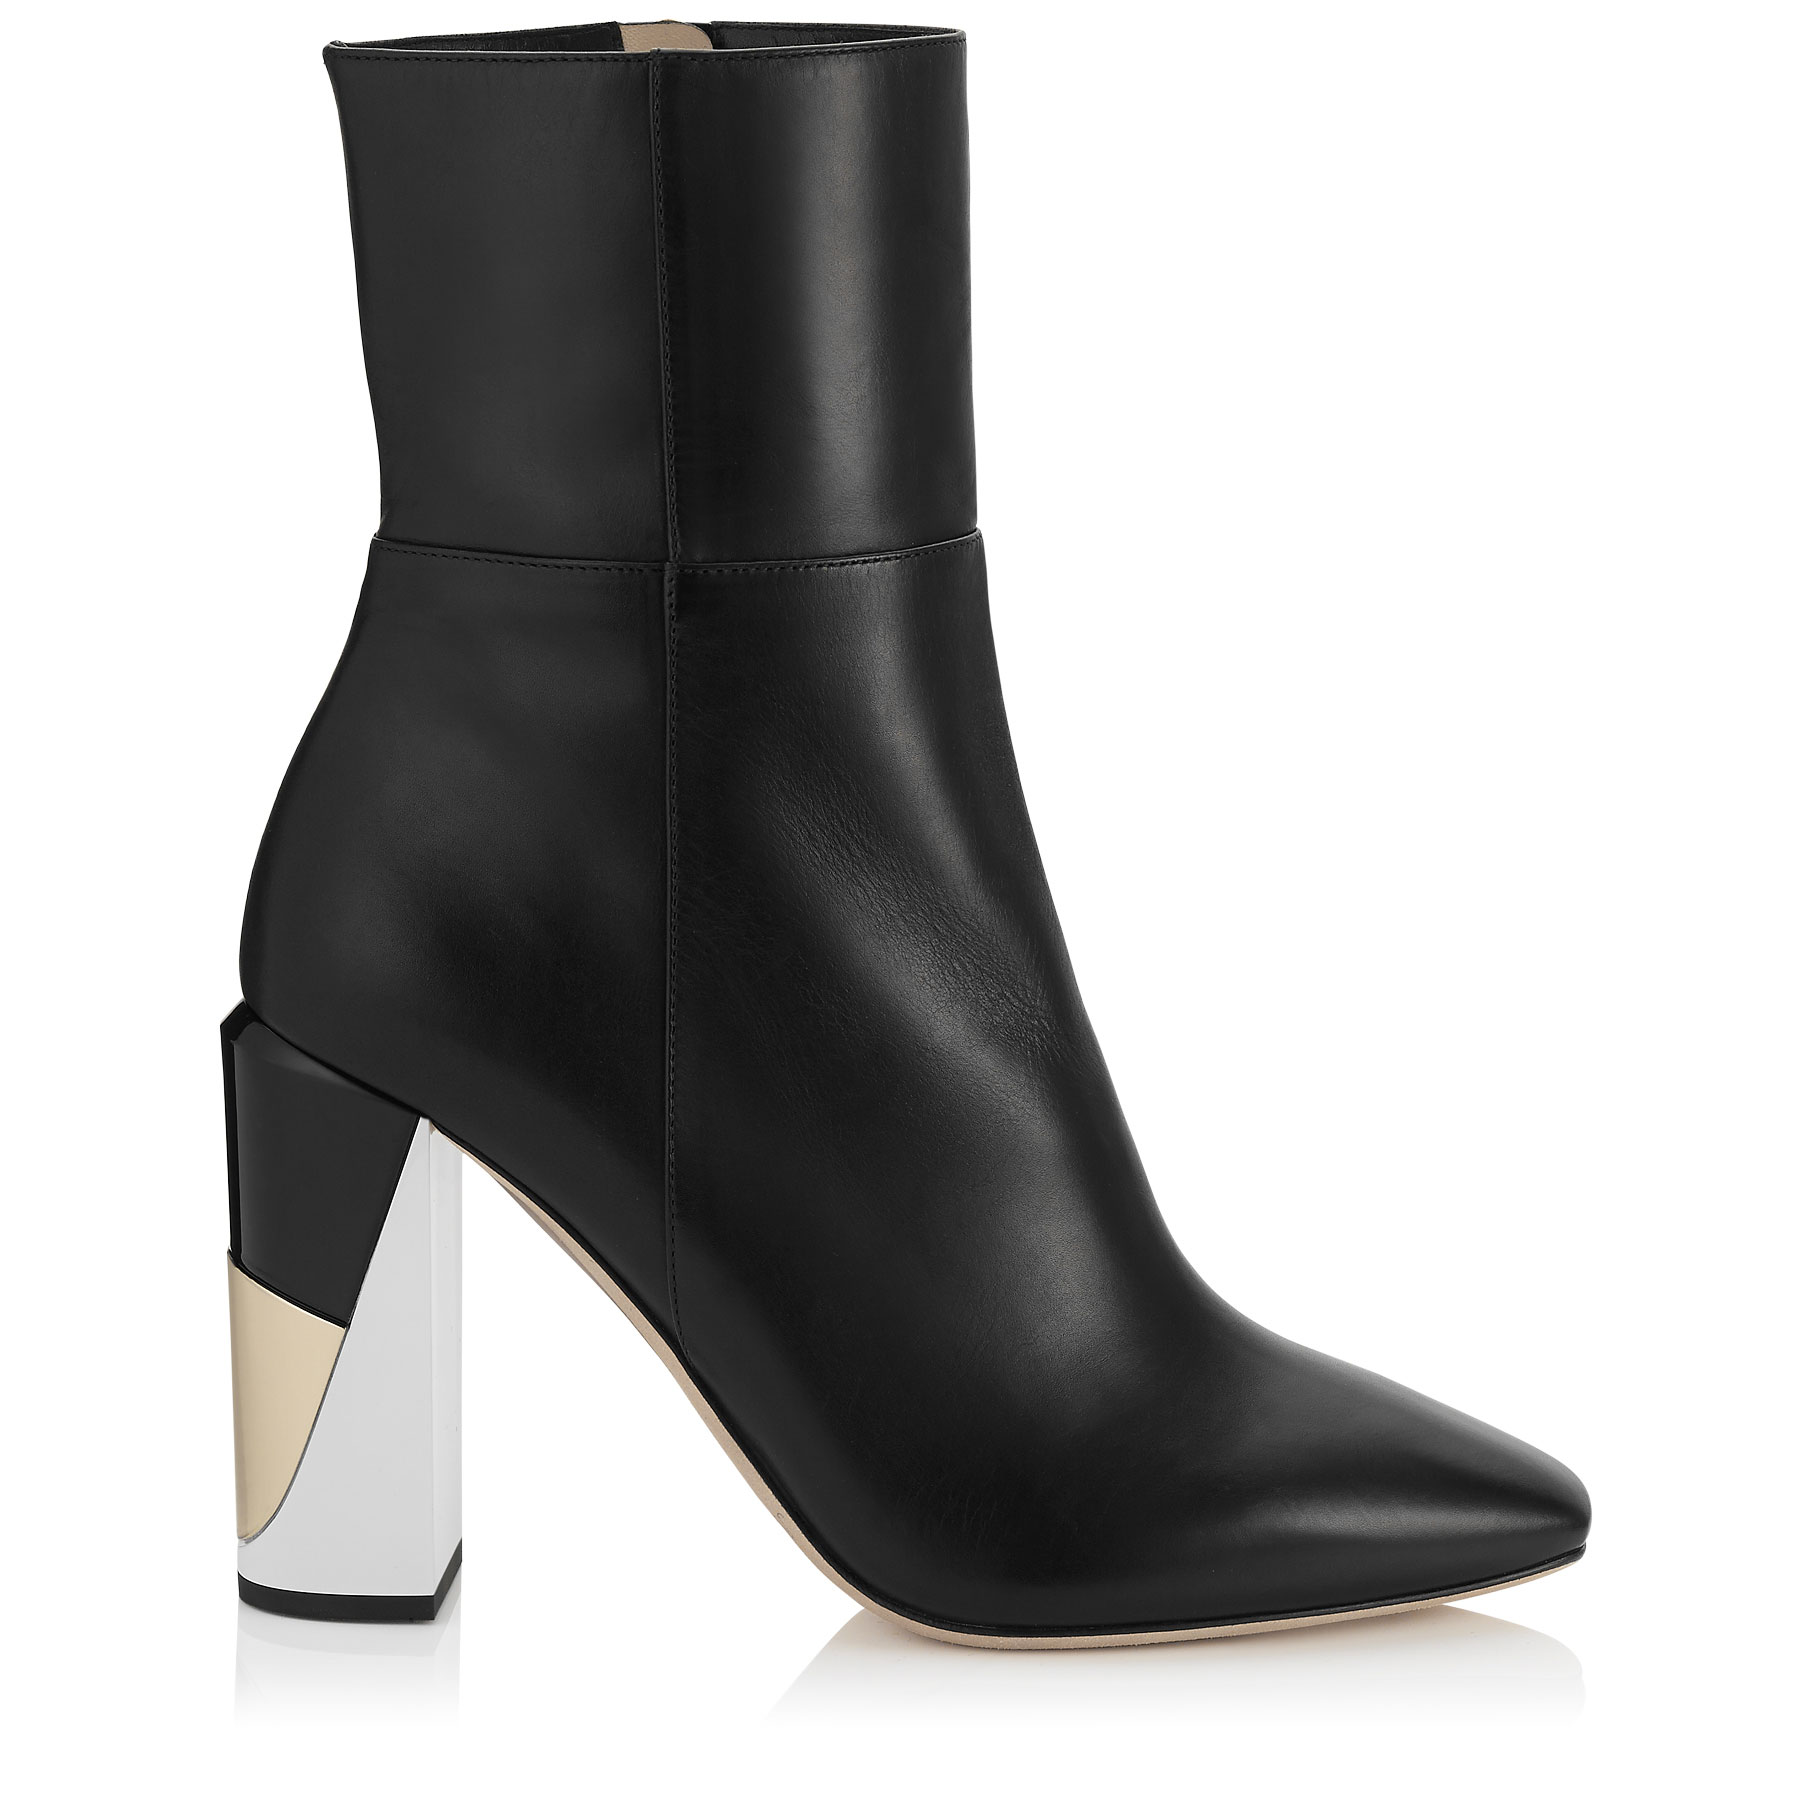 MELROSE 95 Black Nappa Leather Ankle Boots